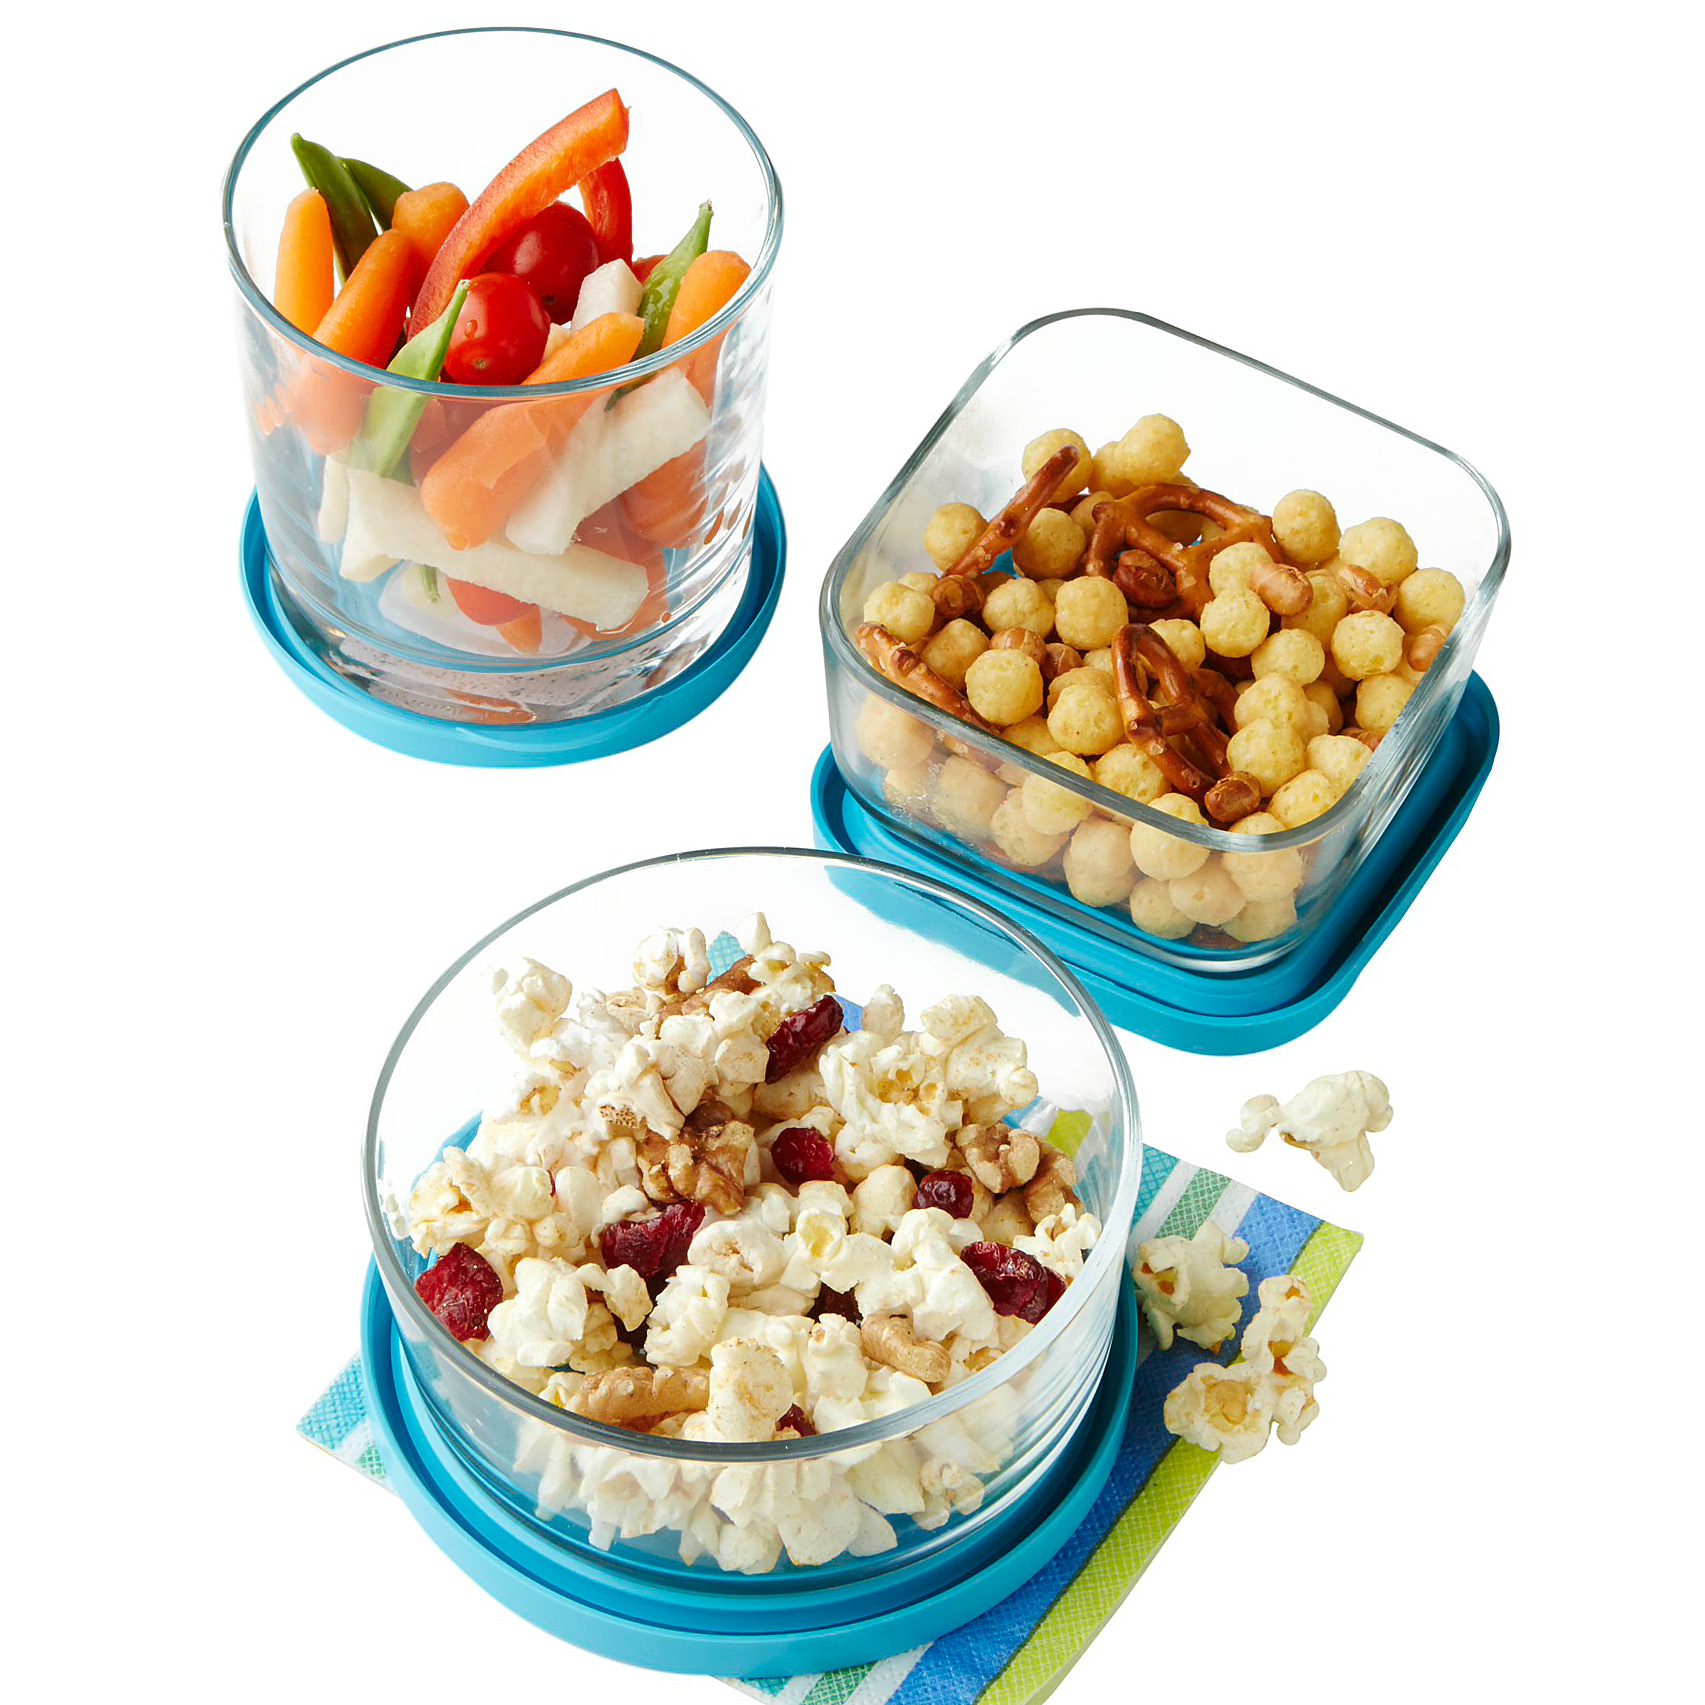 healthy snacks in containers, veggies, popcorn mix, trail mix